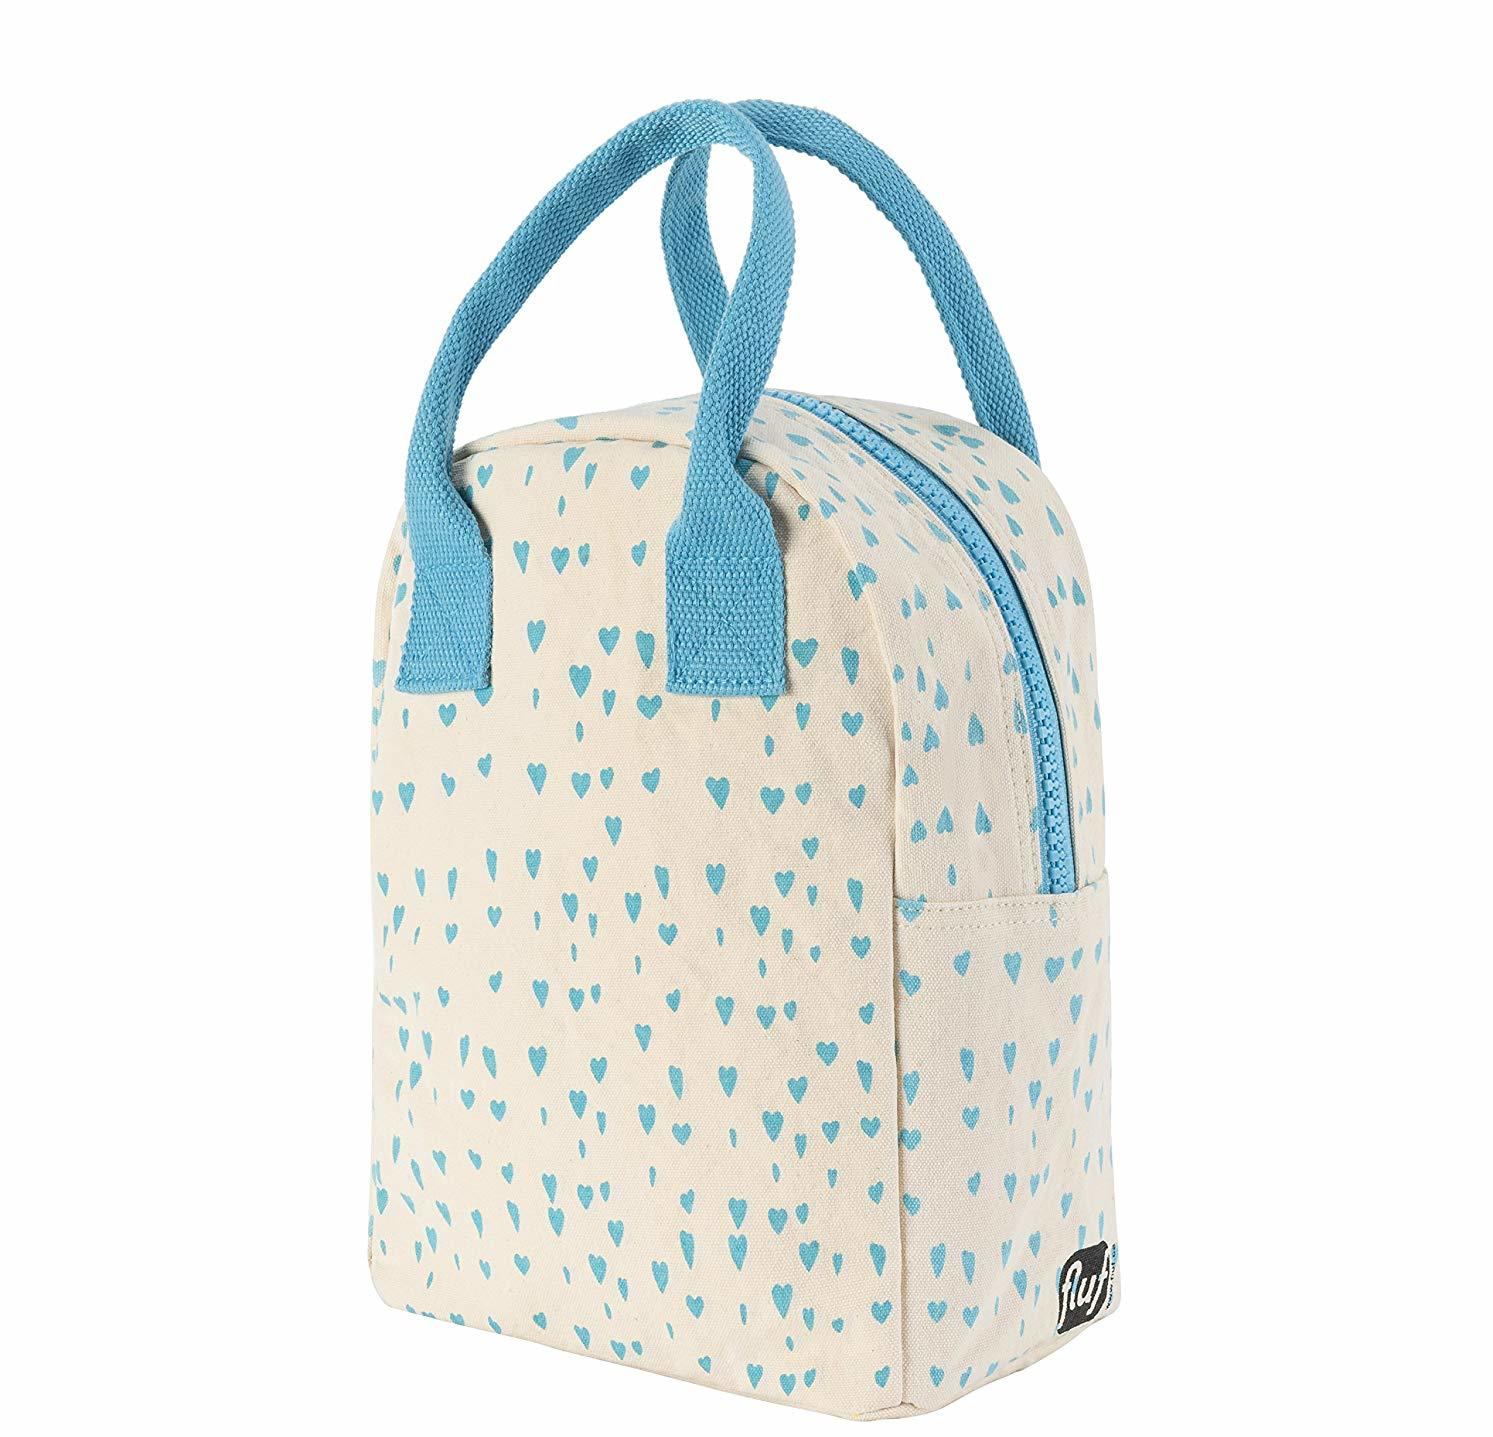 Flufl Blue Hearts Lunch Box cream canvas with light blue hearts pattern and light blue handle on white background